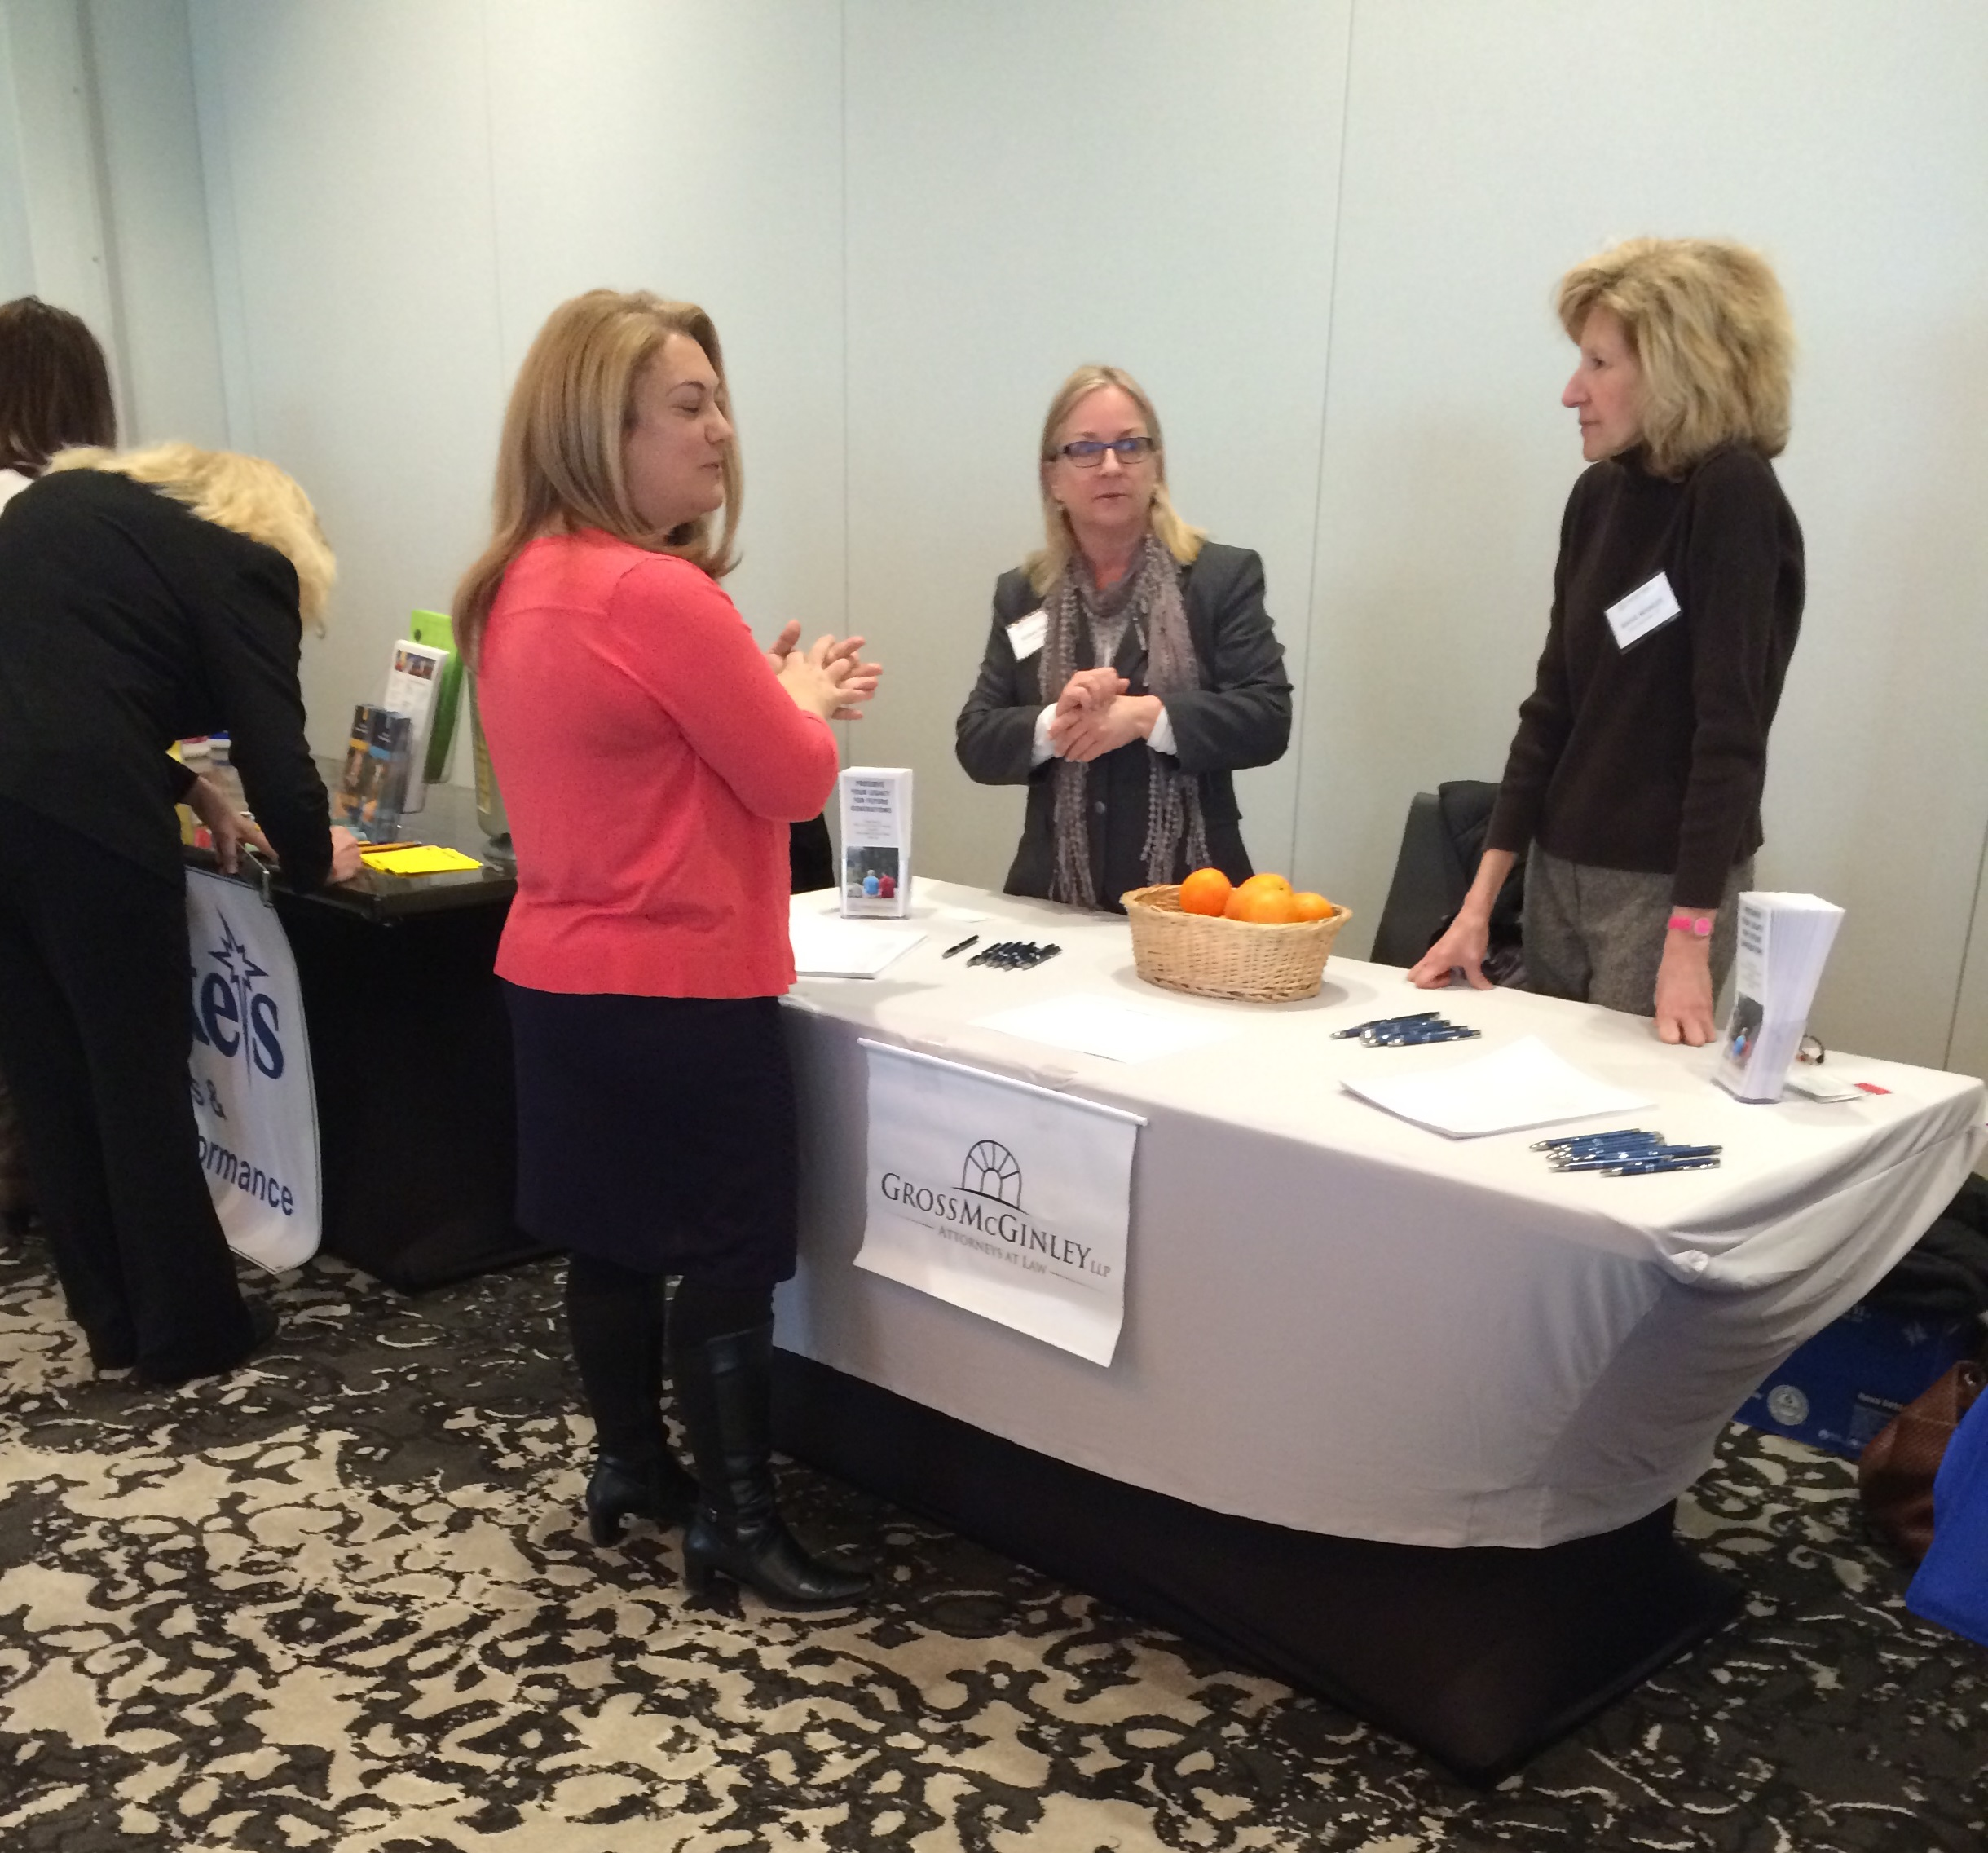 Gross McGinley Attorneys Represent Firm at Chamber of Commerce Women's Health Fair